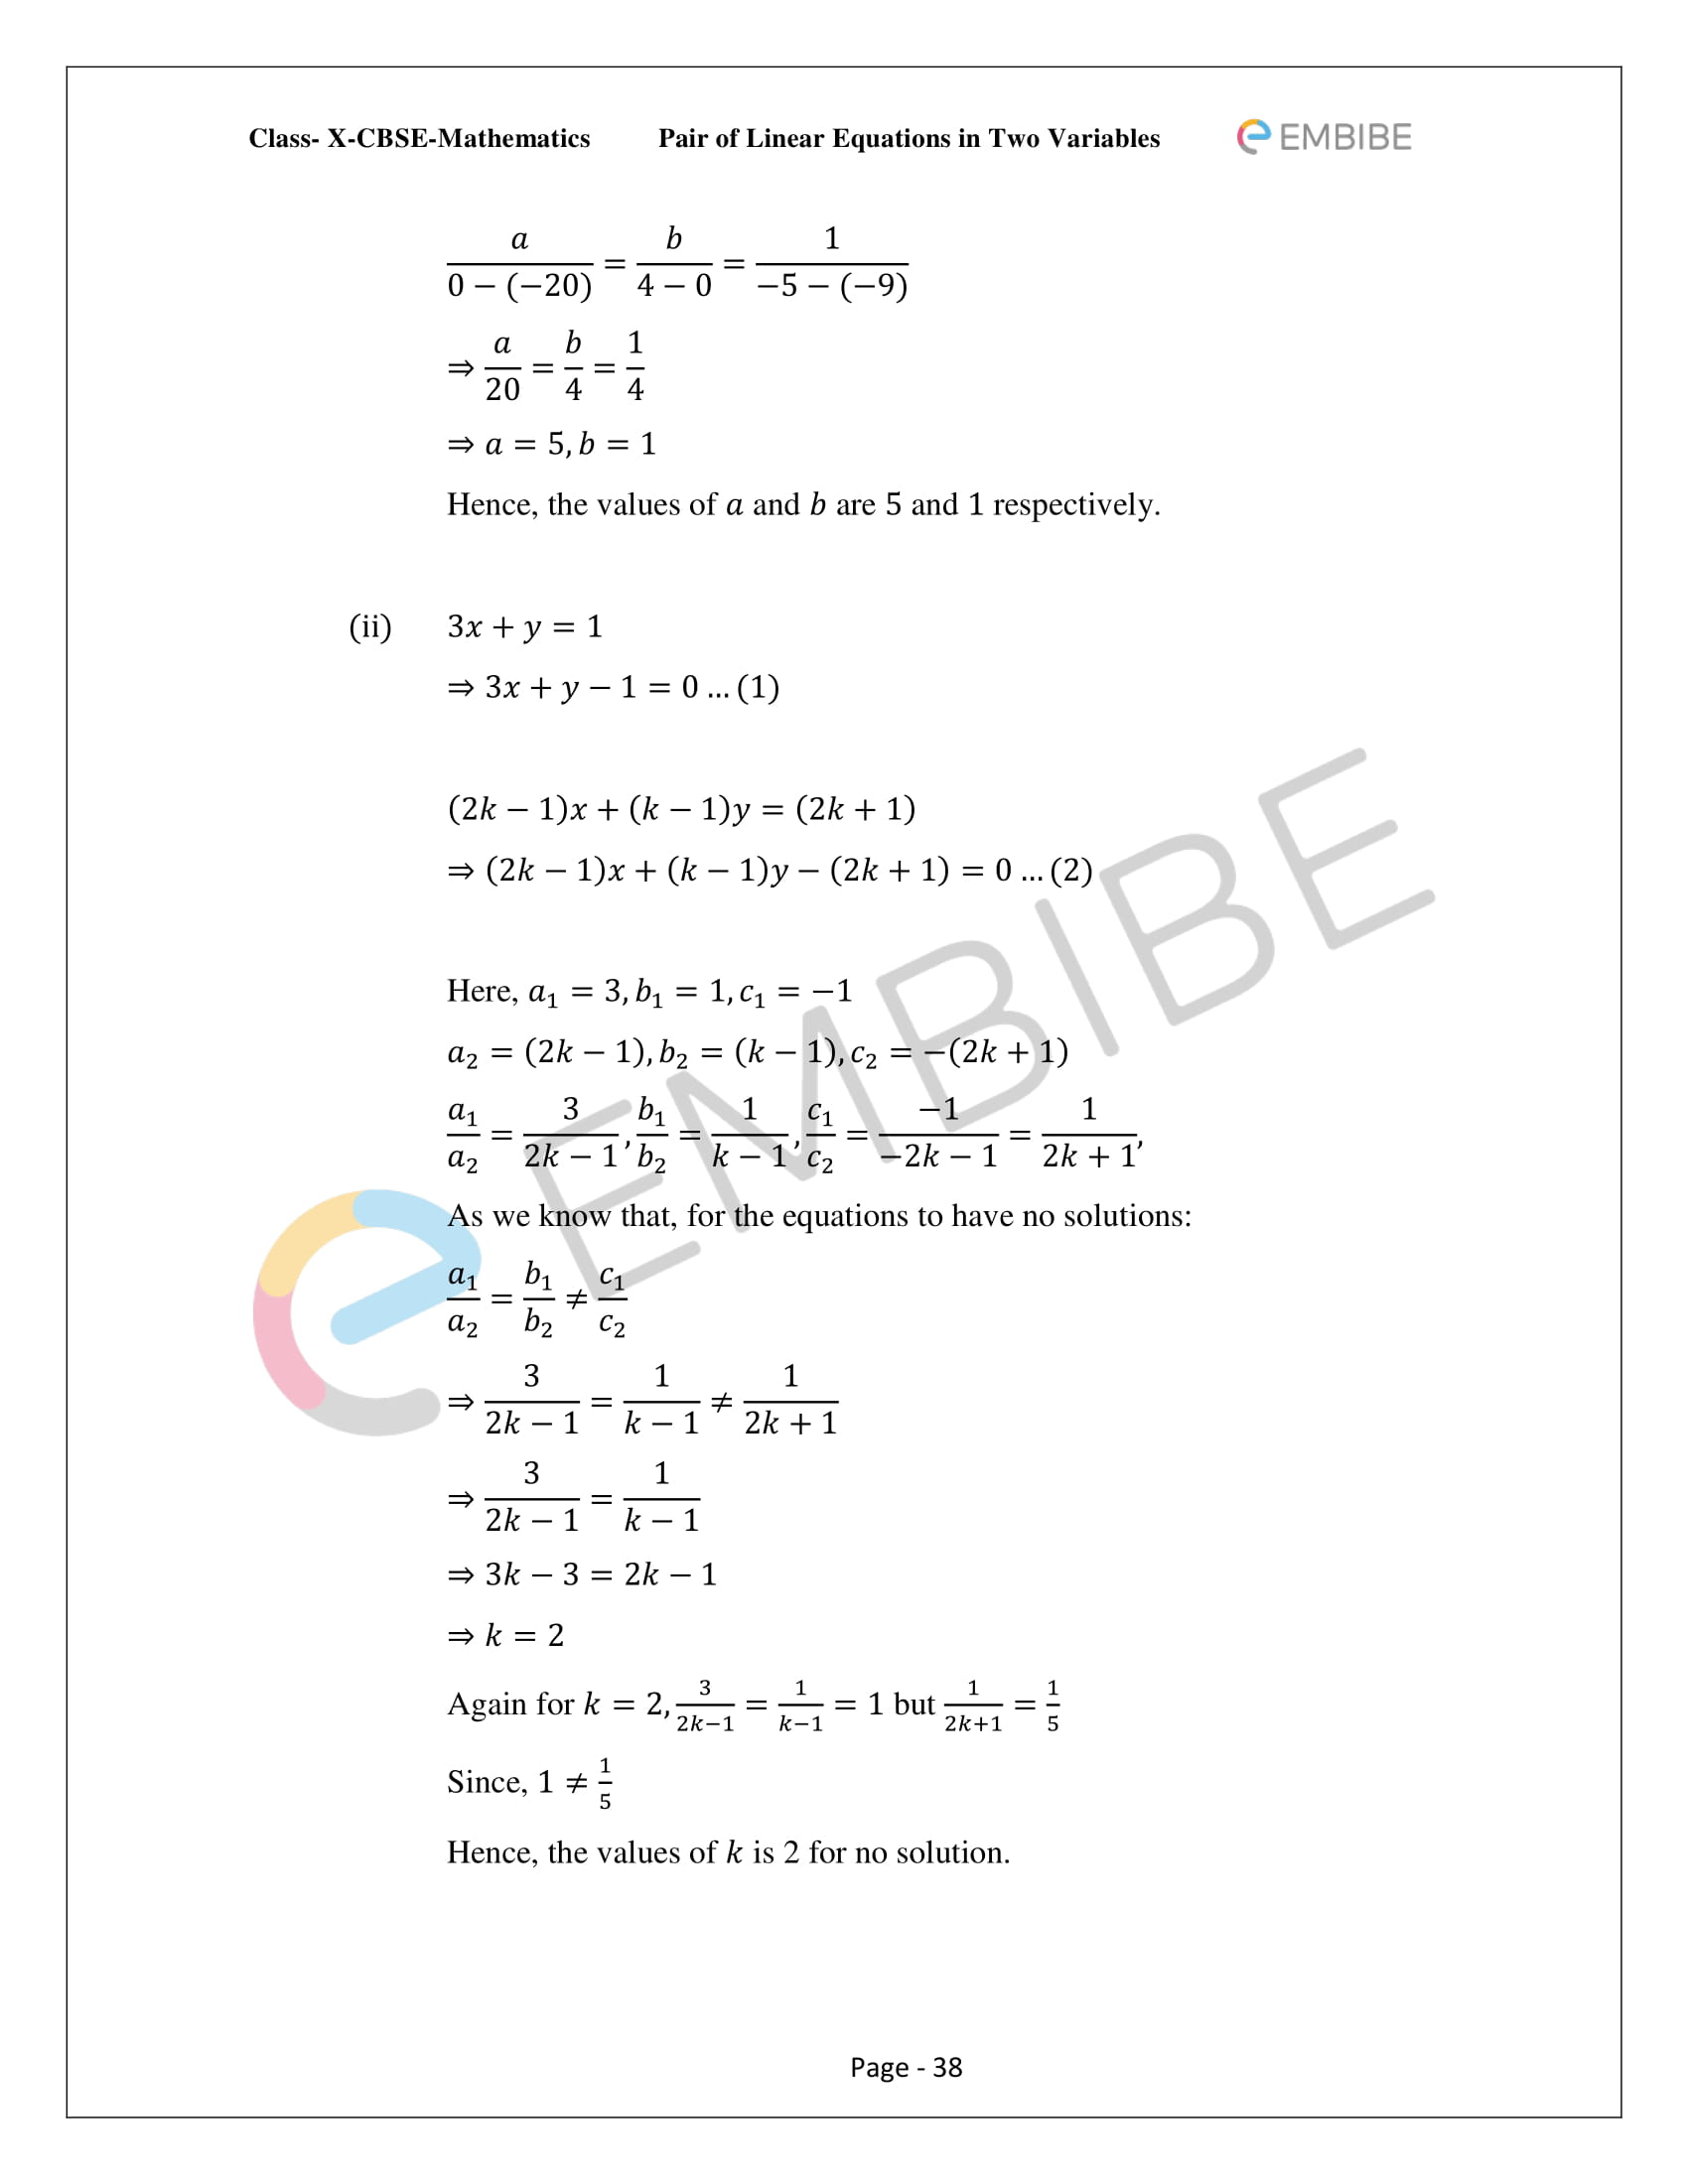 CBSE NCERT Solutions For Class 10 Maths Chapter 3 - Pair of Linear Equations In Two Variables - 38